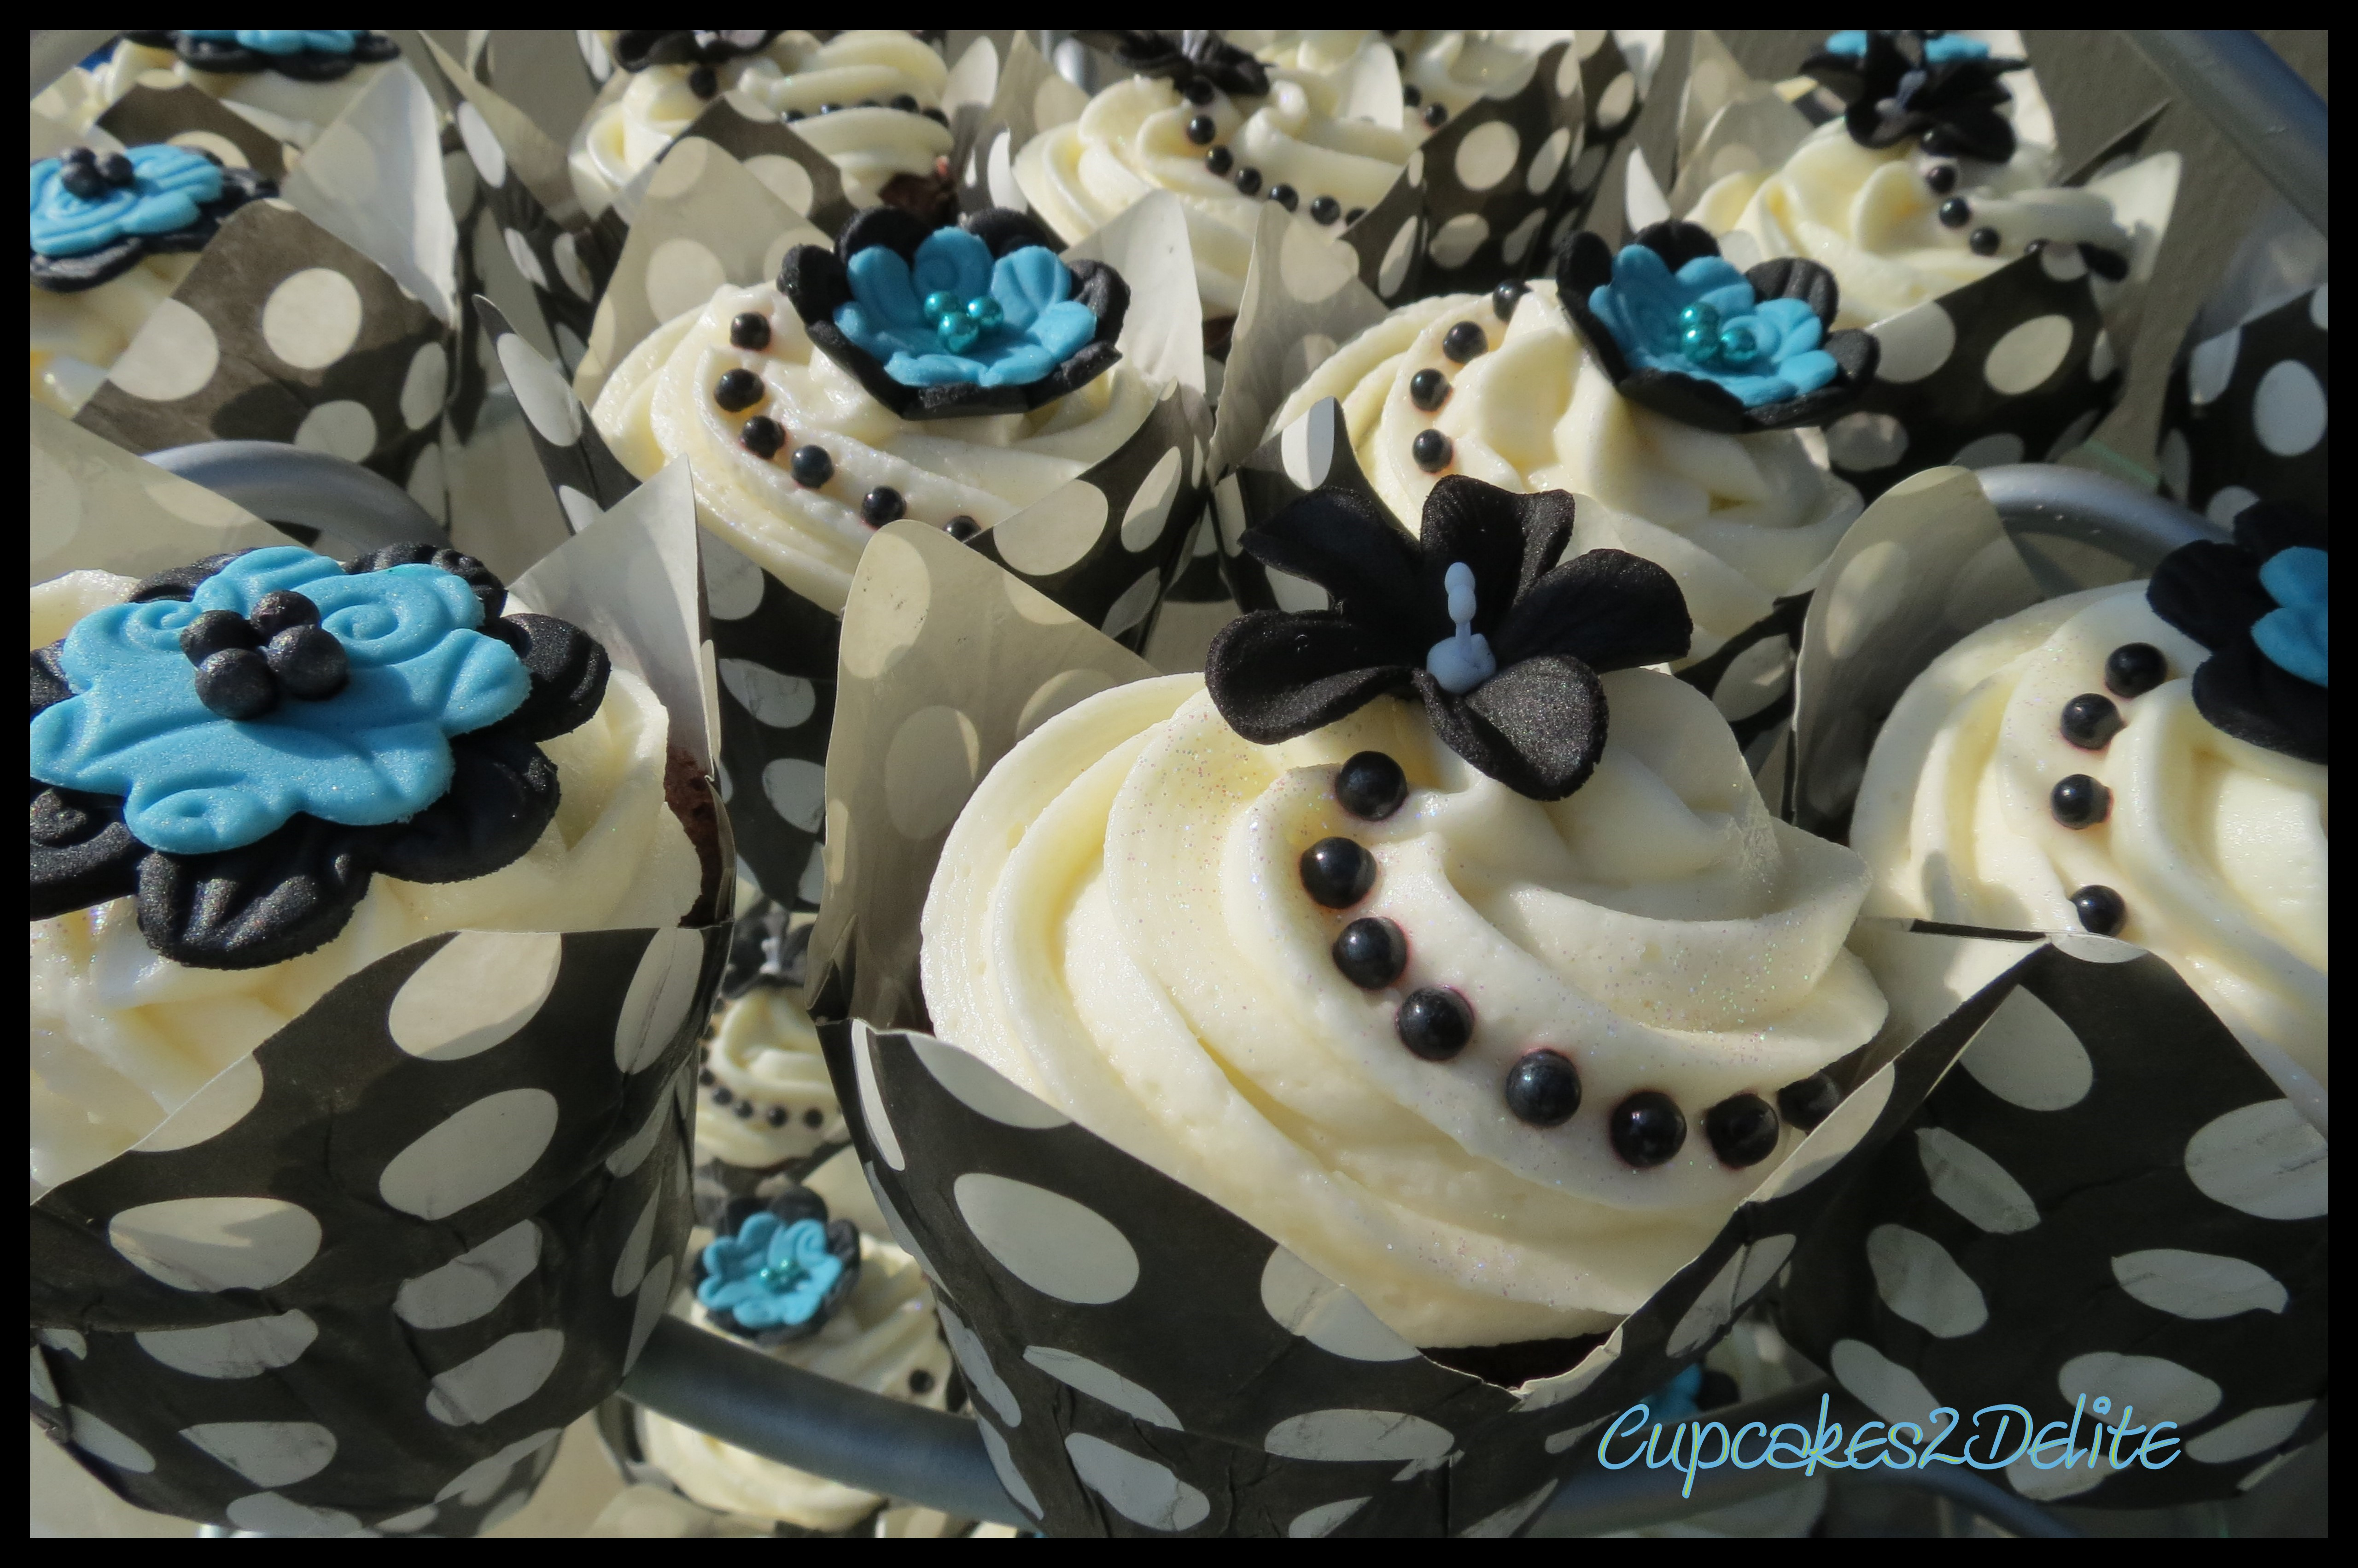 Turquoise and Black Wedding Cupcakes